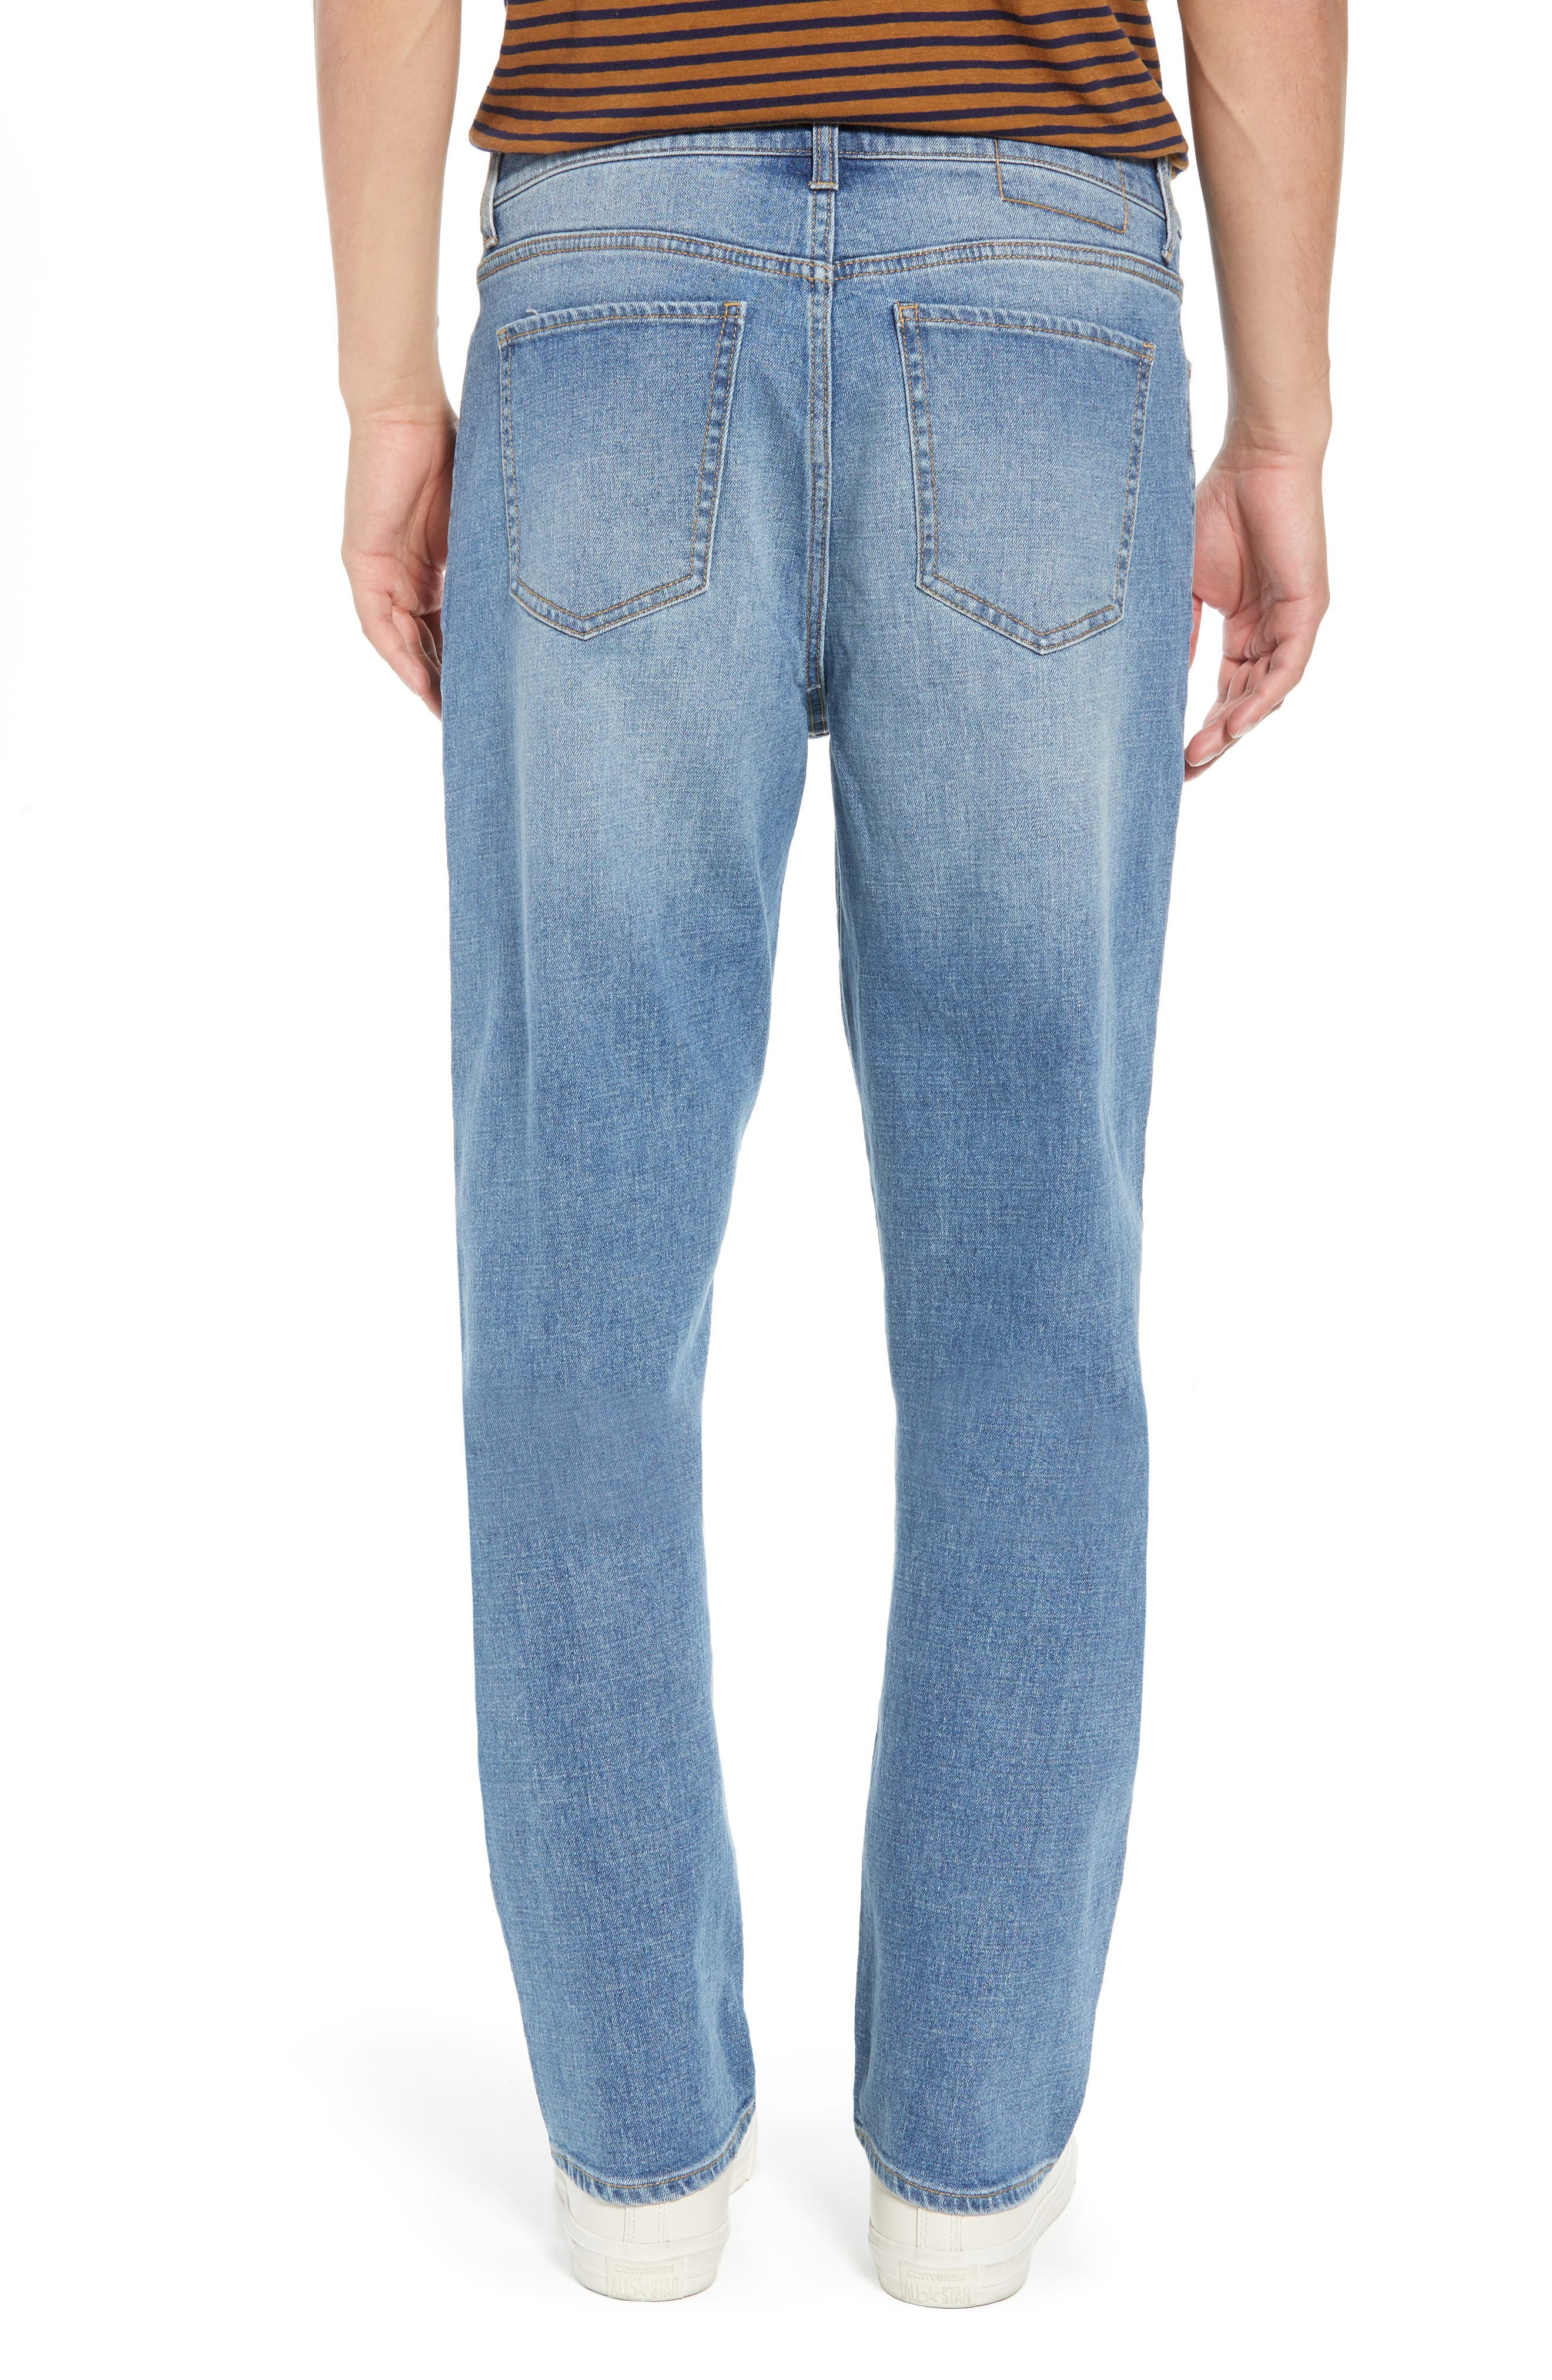 Straight Leg Jeans,                             Alternate thumbnail 2, color,                             BLUE EVAN WASH